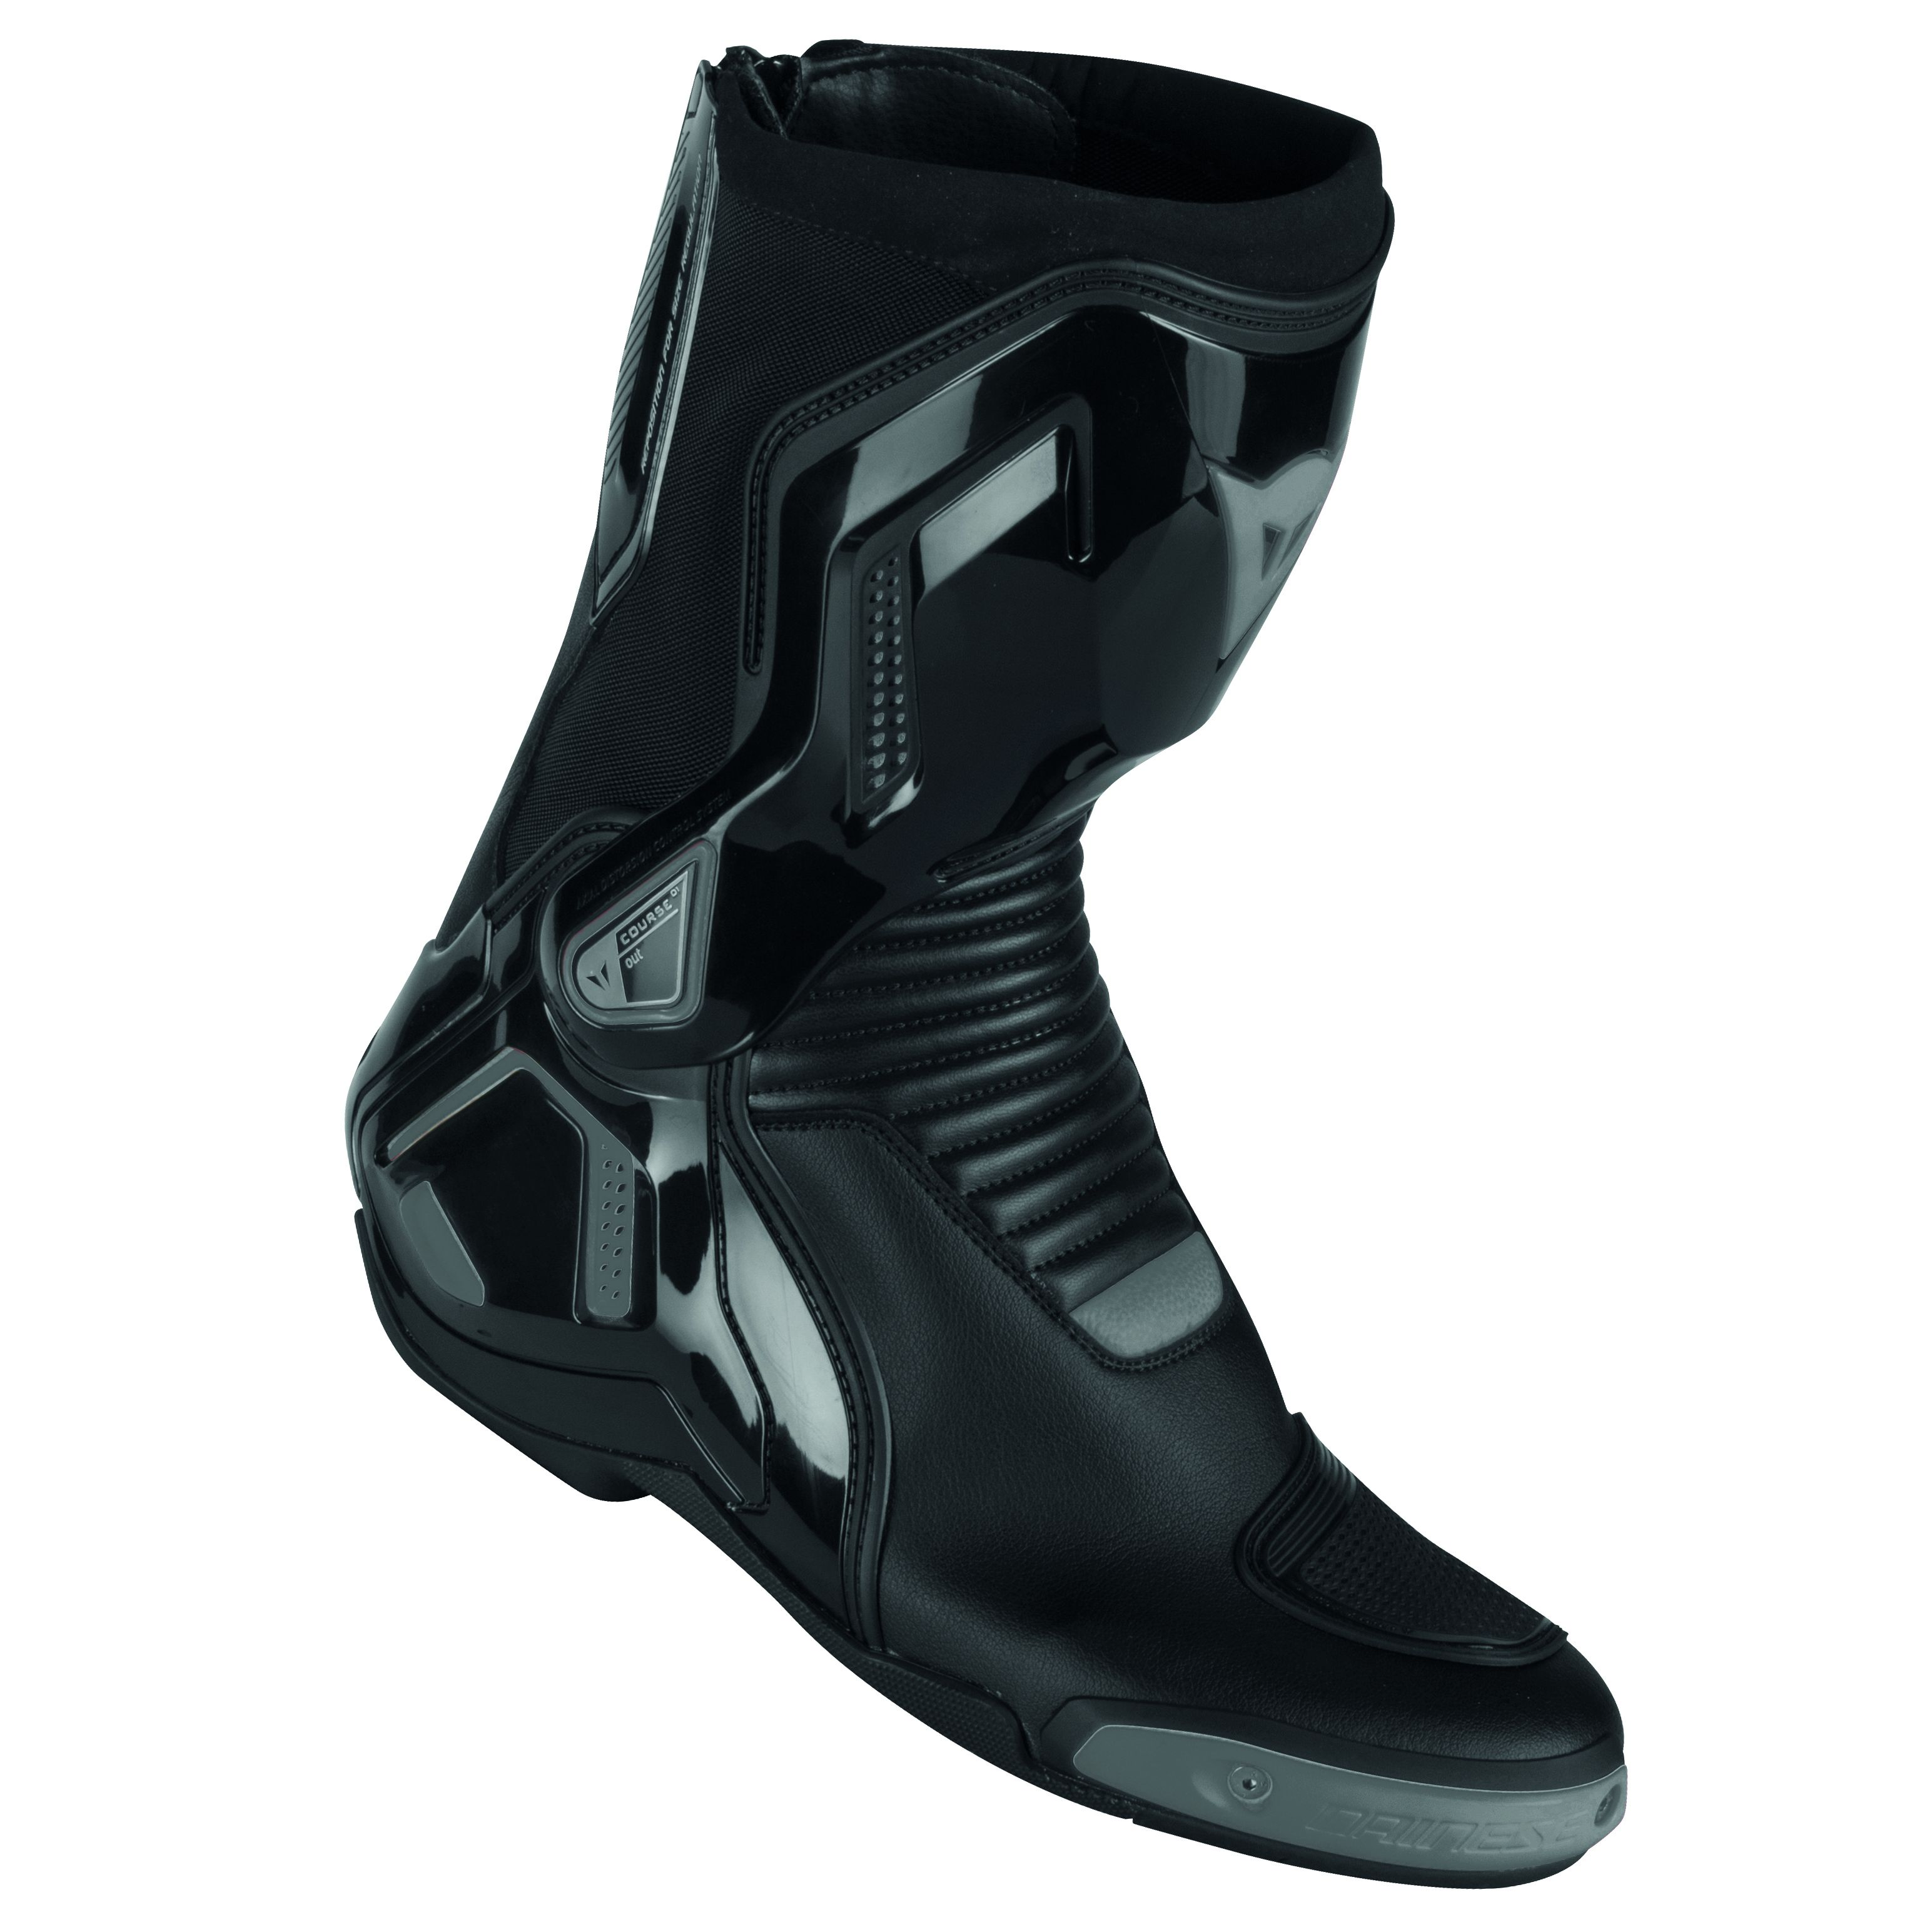 Bottes D1 COURSE Bottes Dainese Dainese COURSE D1 COURSE COURSE Dainese Bottes OUT D1 Bottes Dainese OUT OUT 5rCwzq4C0